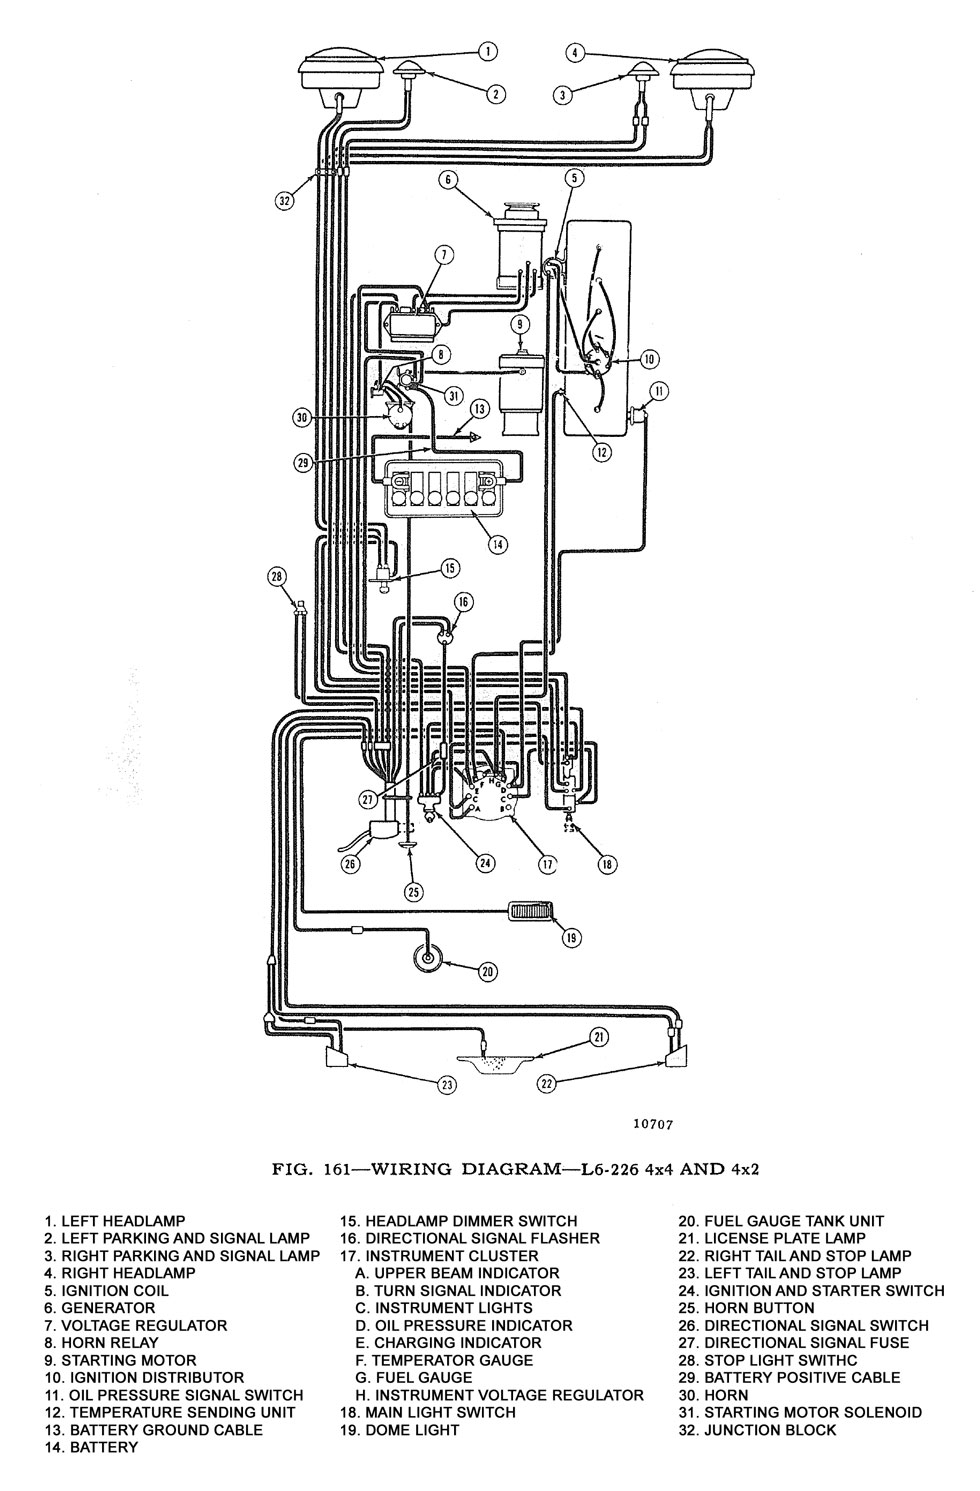 medium resolution of wiring diagram l6 226 4x4 and 4x2 warner winch a2000 wiring diagram 4x4 wiring diagram